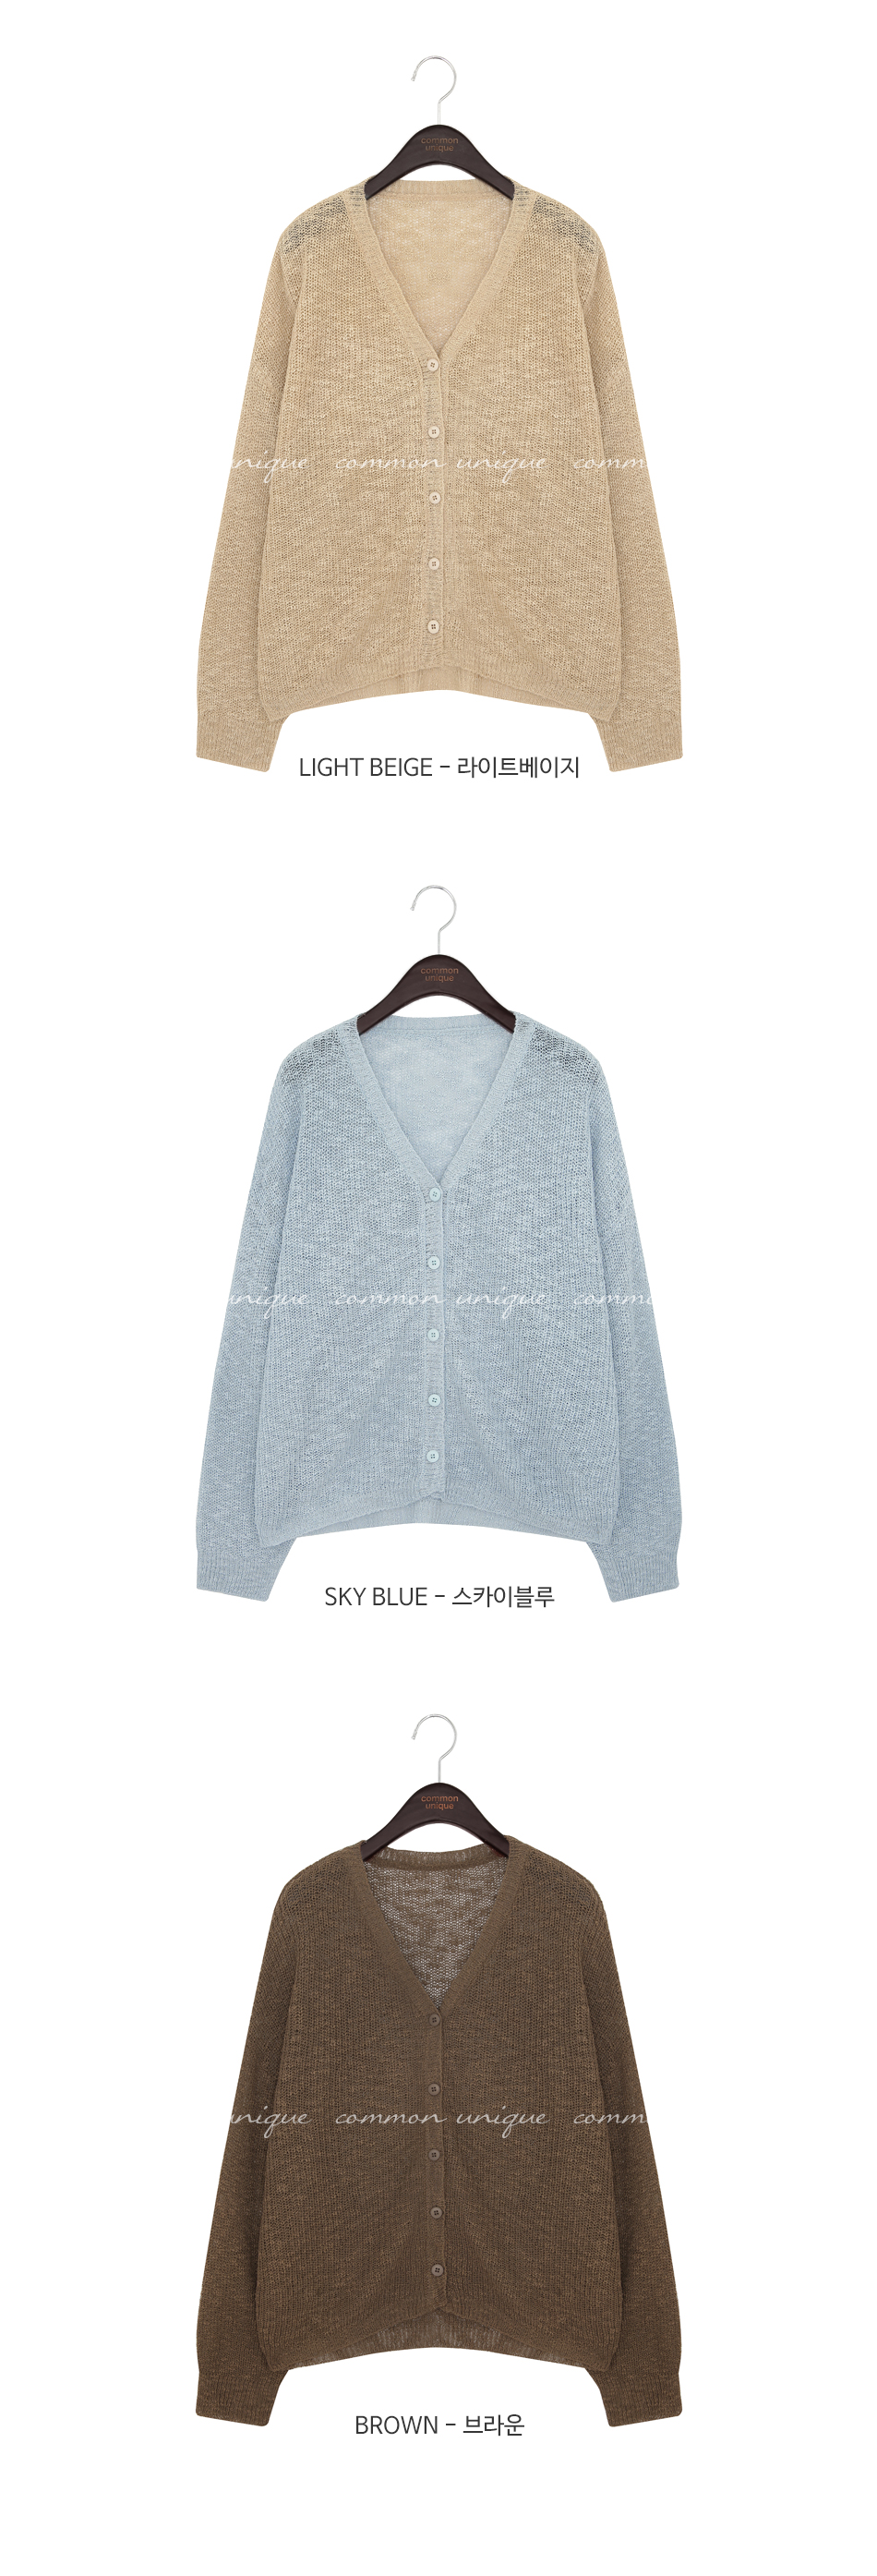 PEAKE VINTAGE LOOSE KNIT CARDIGAN WITH CELEBRITY _ 조보아 착용